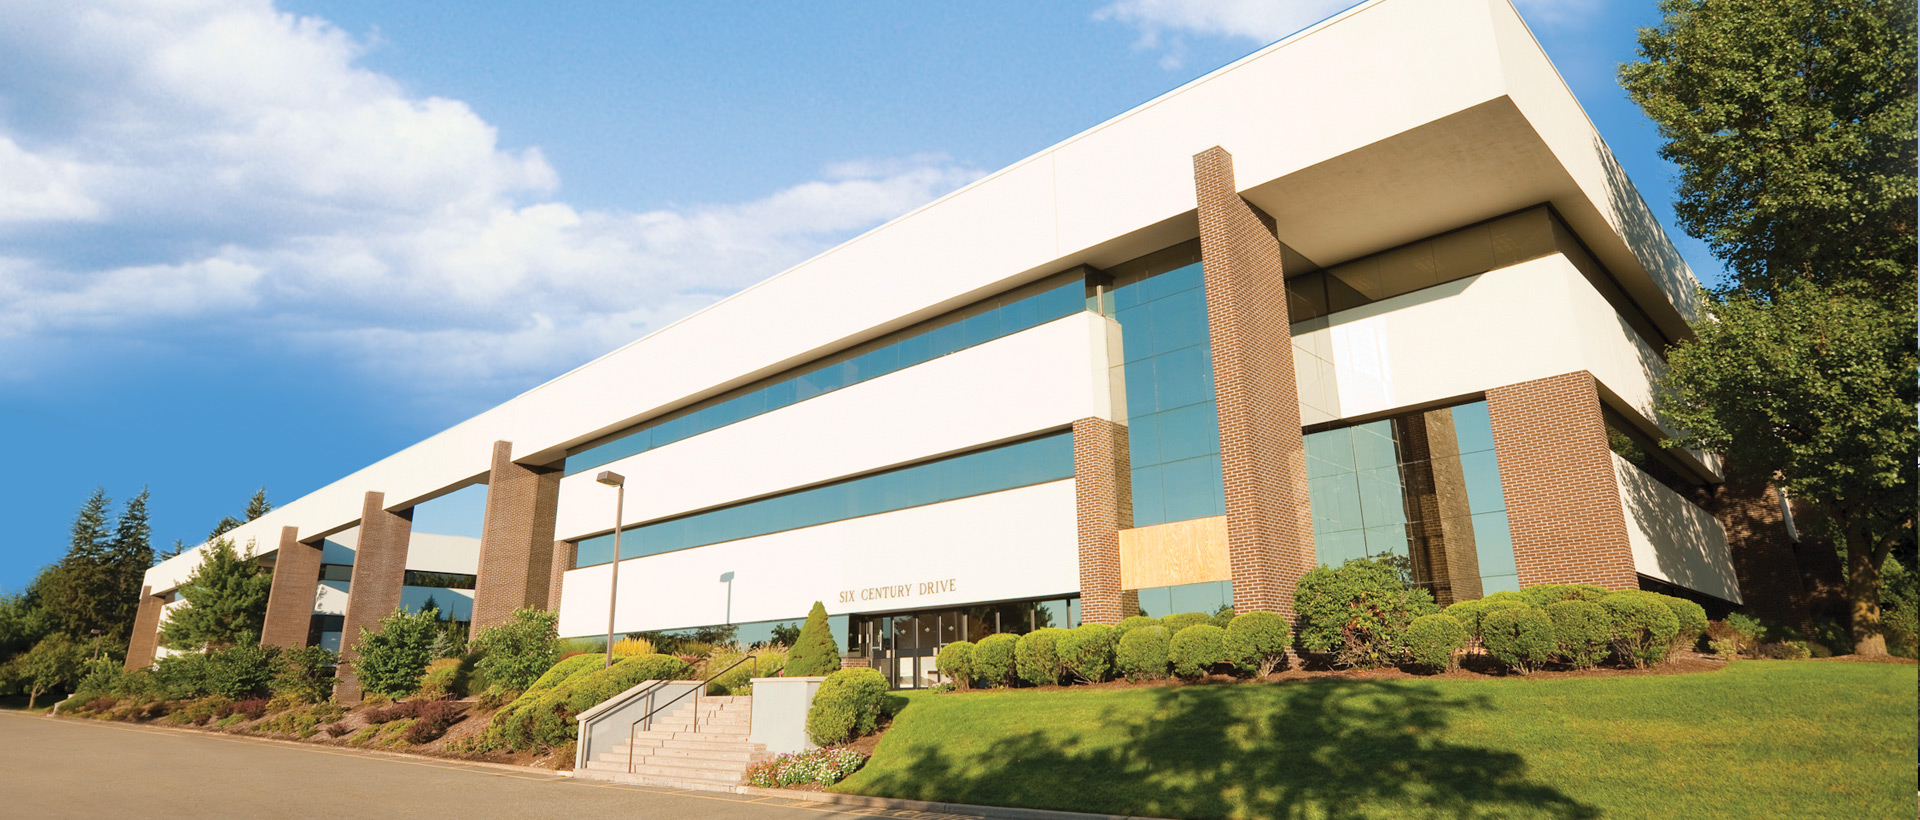 Bergman Real Estate Group and Time Equities acquire three building